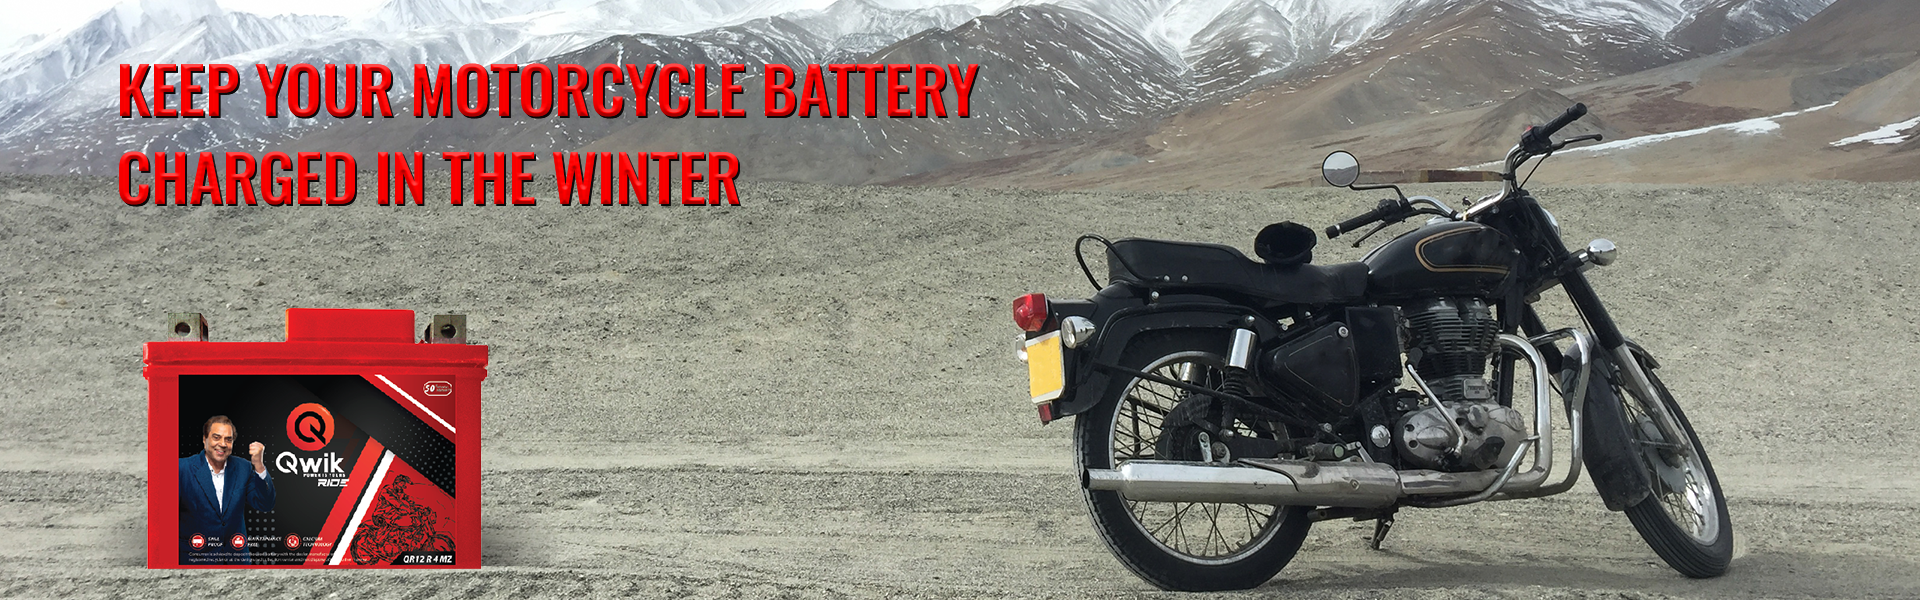 keep your motorcycle battery charged in the winter